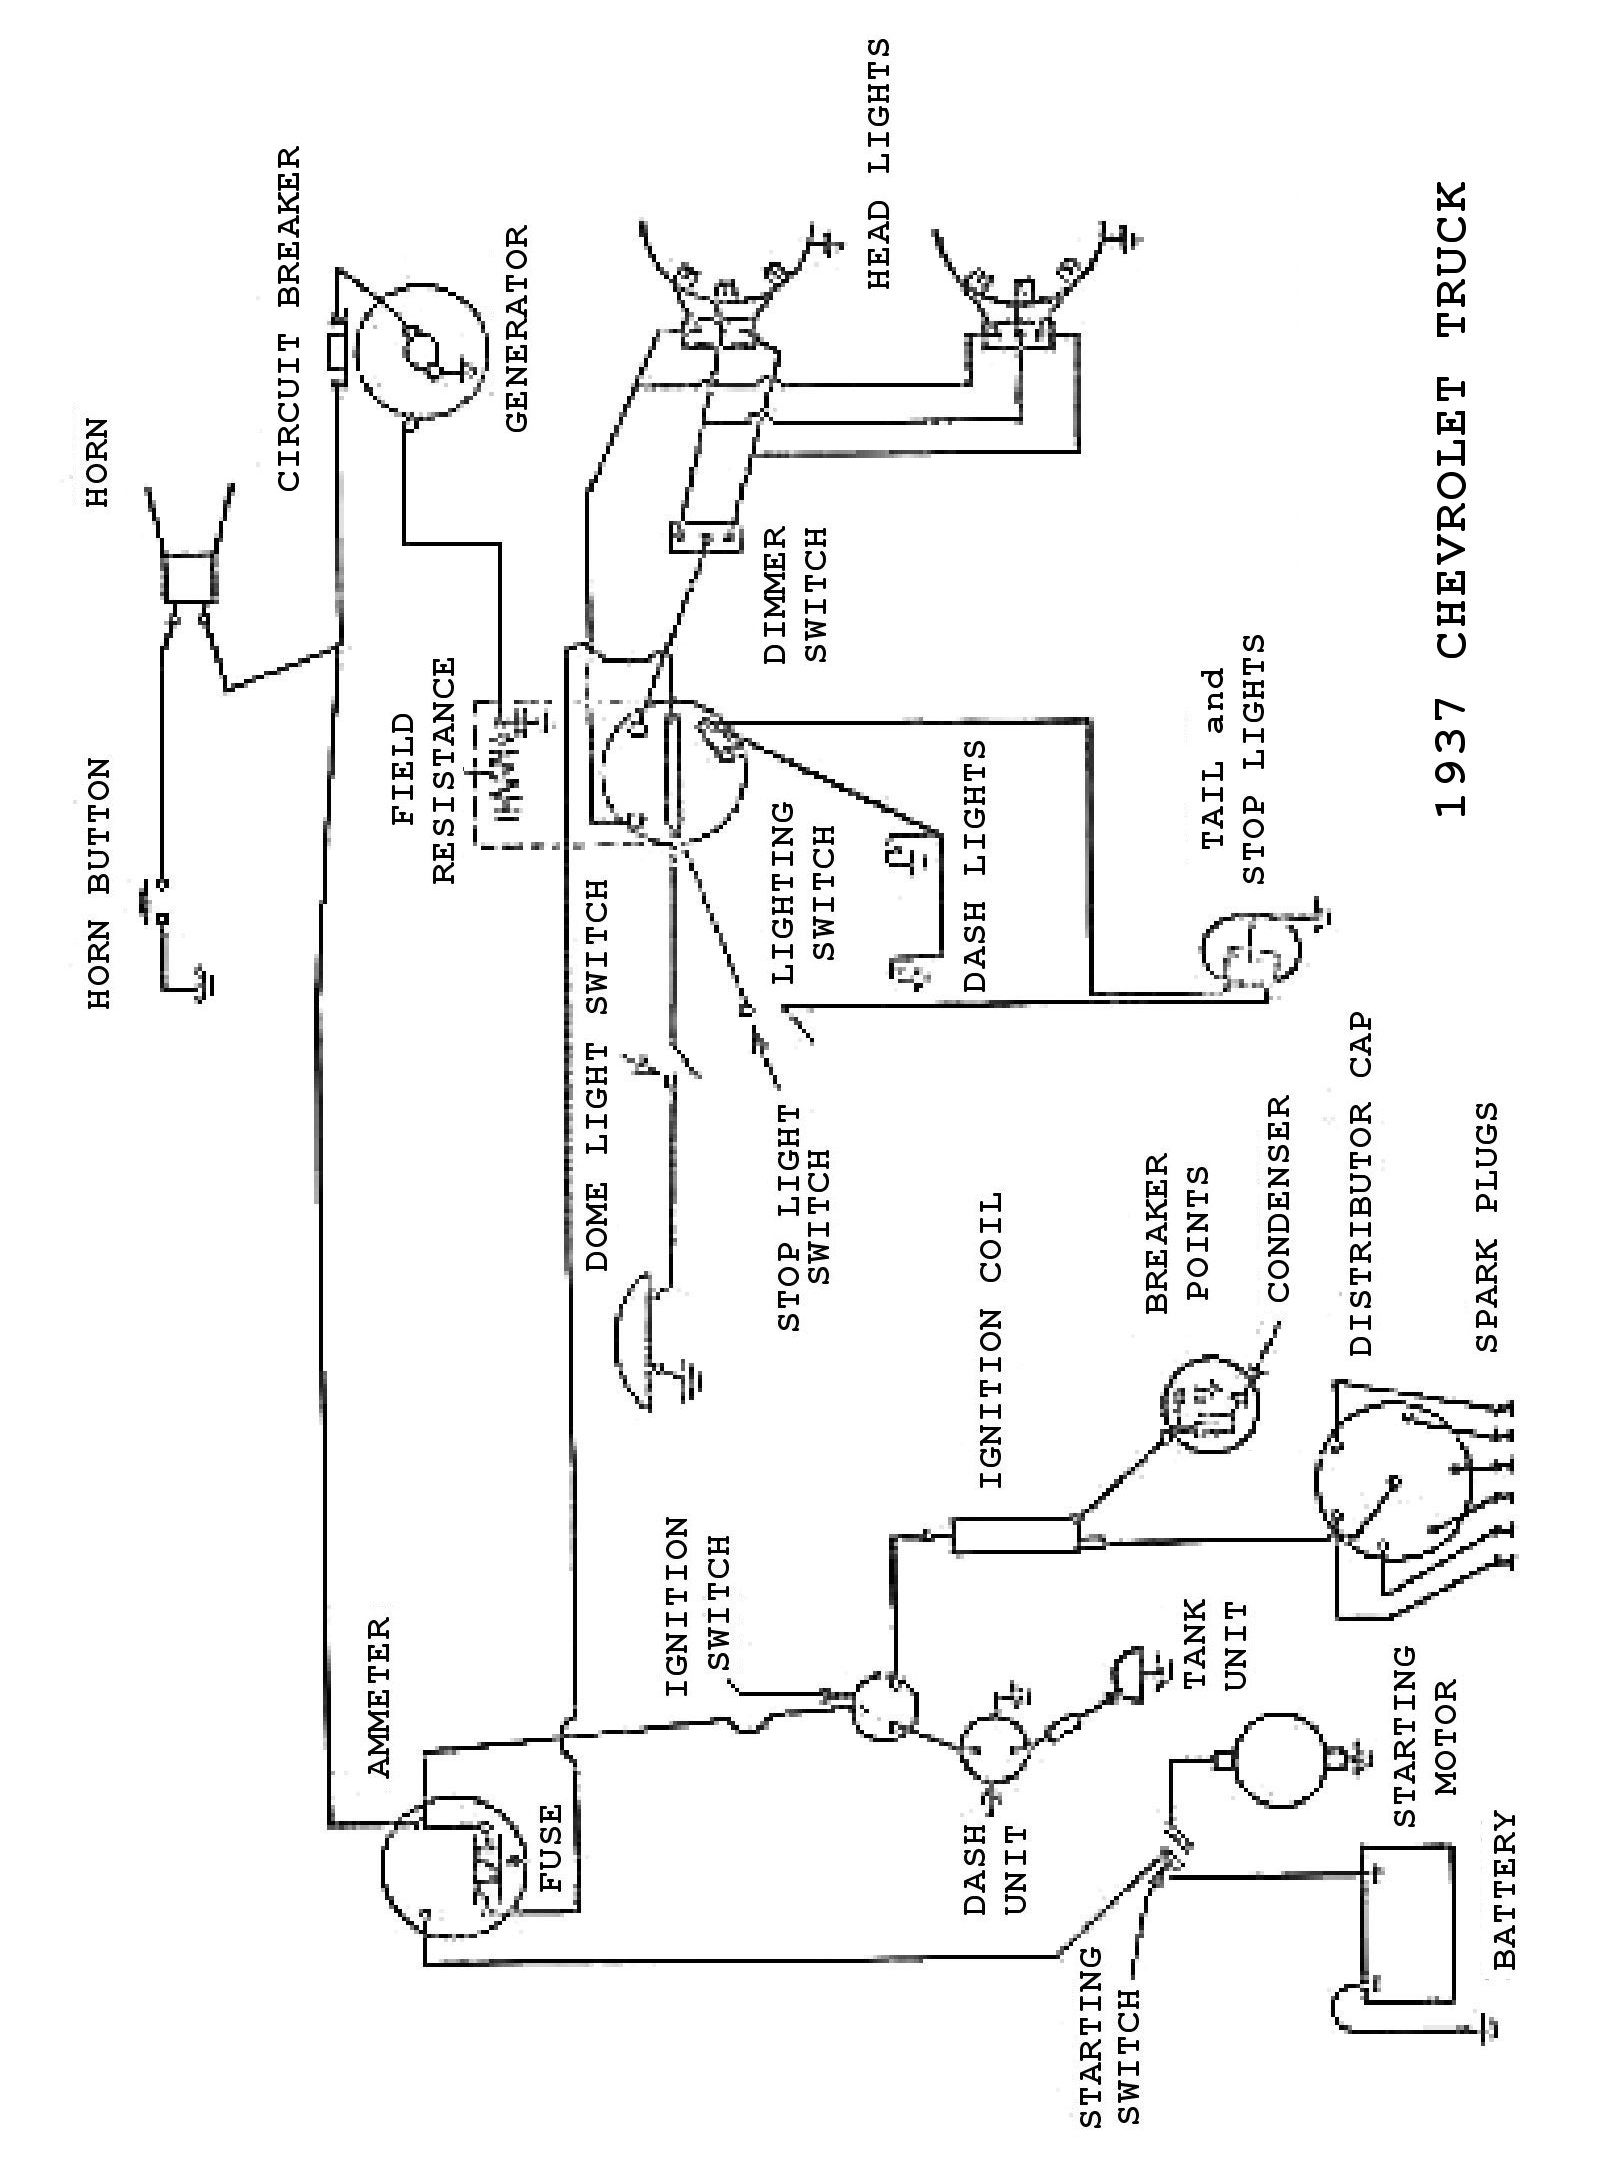 37truck chevy truck wiring diagram chevy fuel pump wiring diagram \u2022 wiring Ford Model T at bayanpartner.co